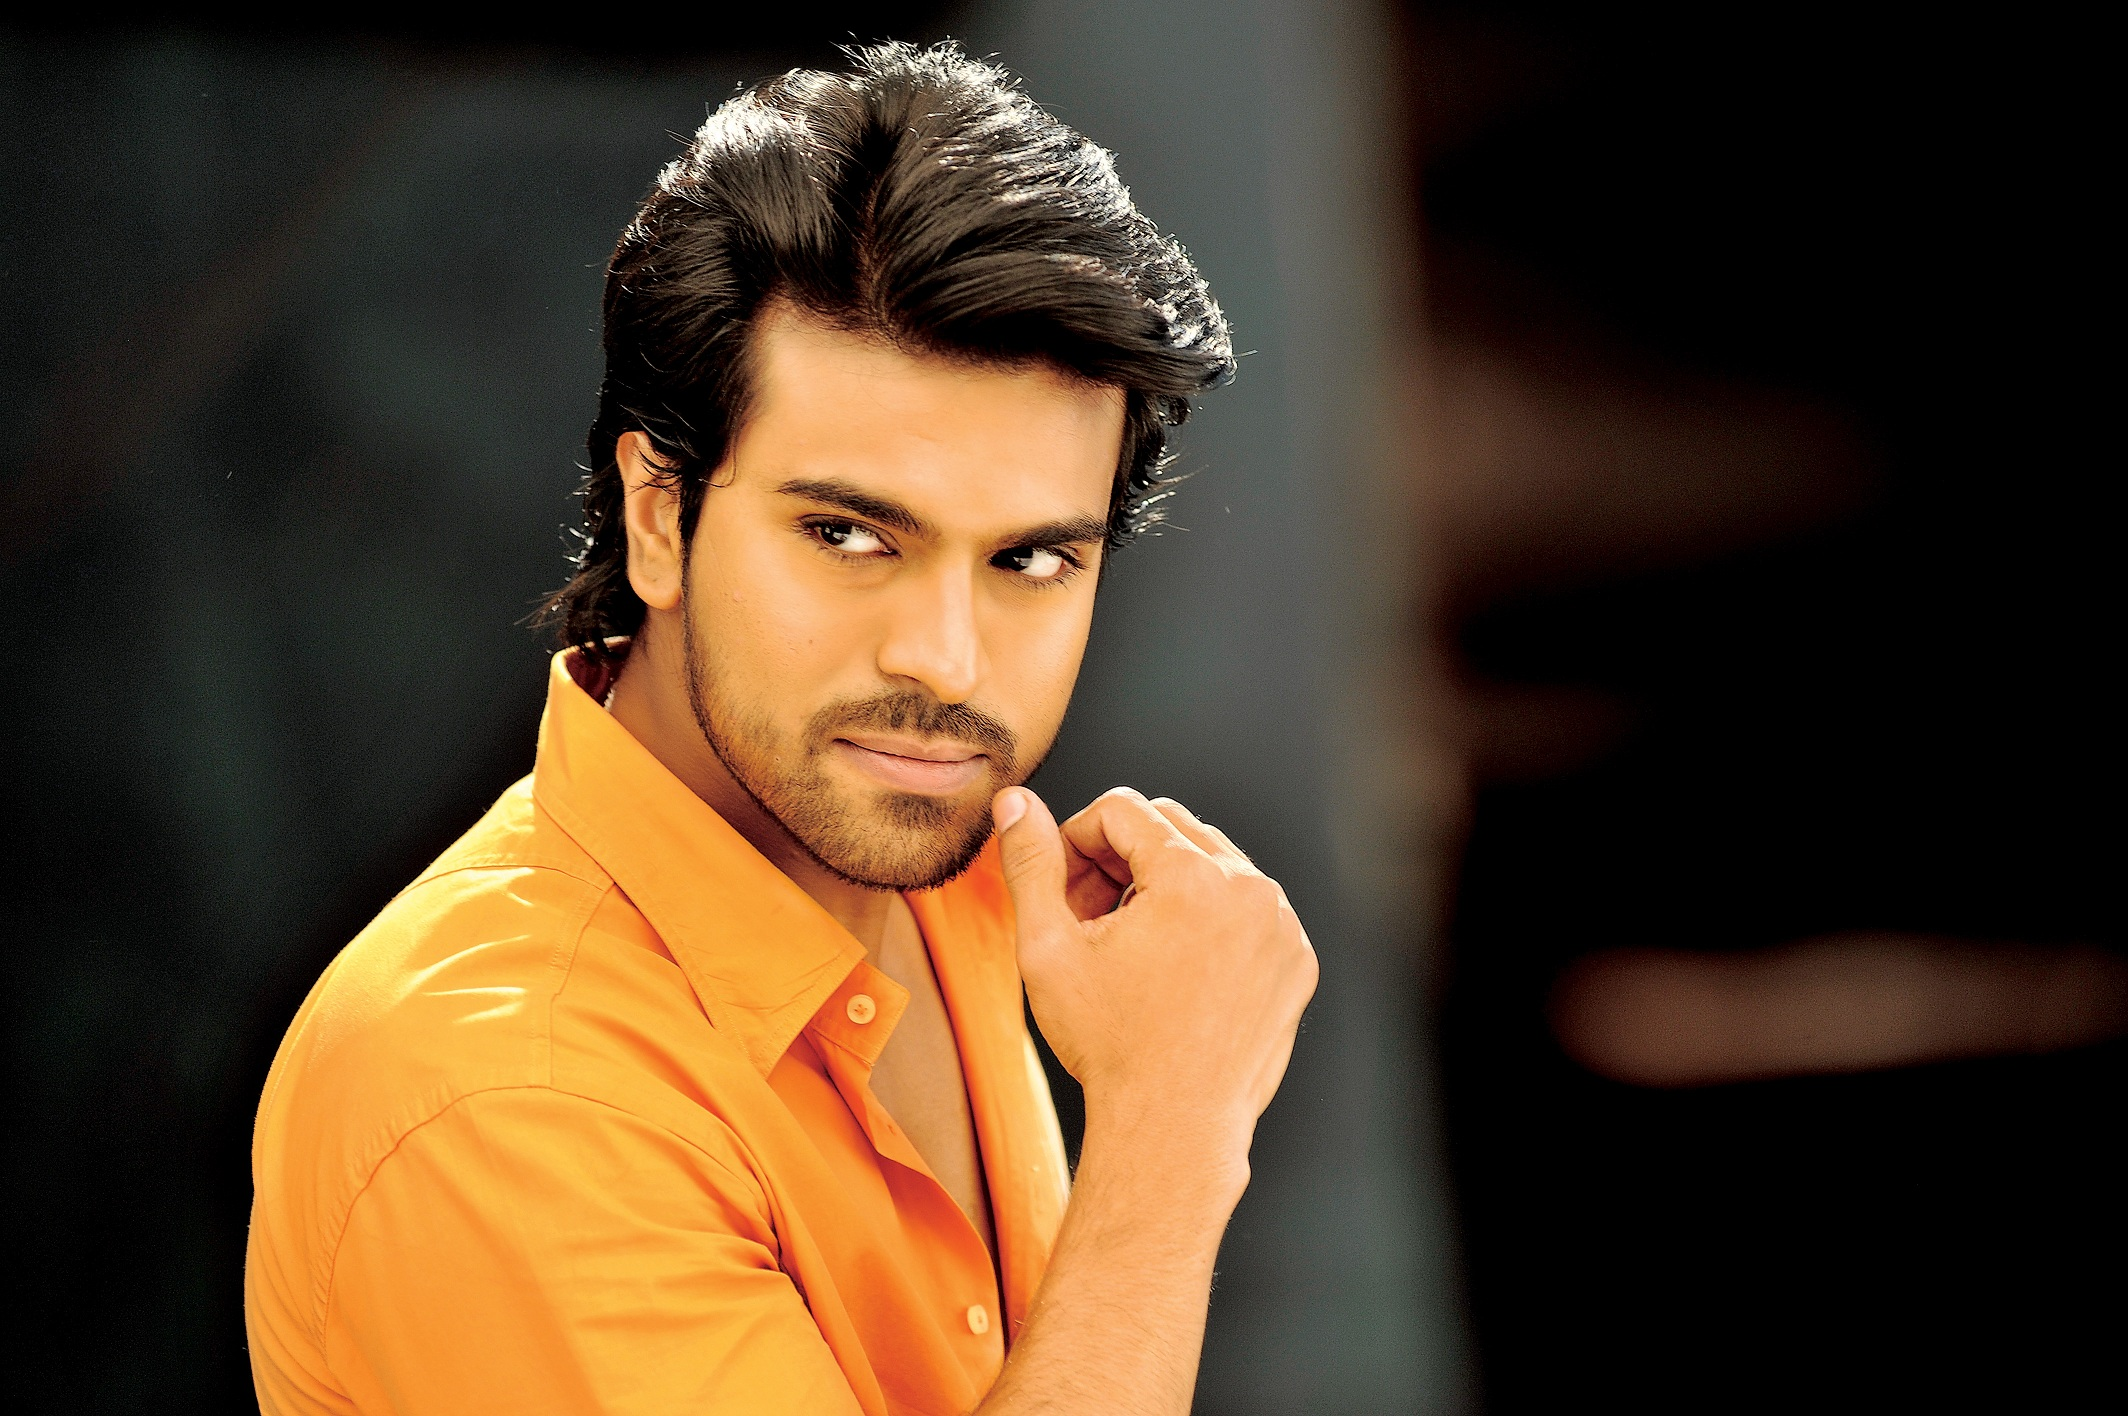 Ram charan teja movies list in hindi dubbed dailymotion short